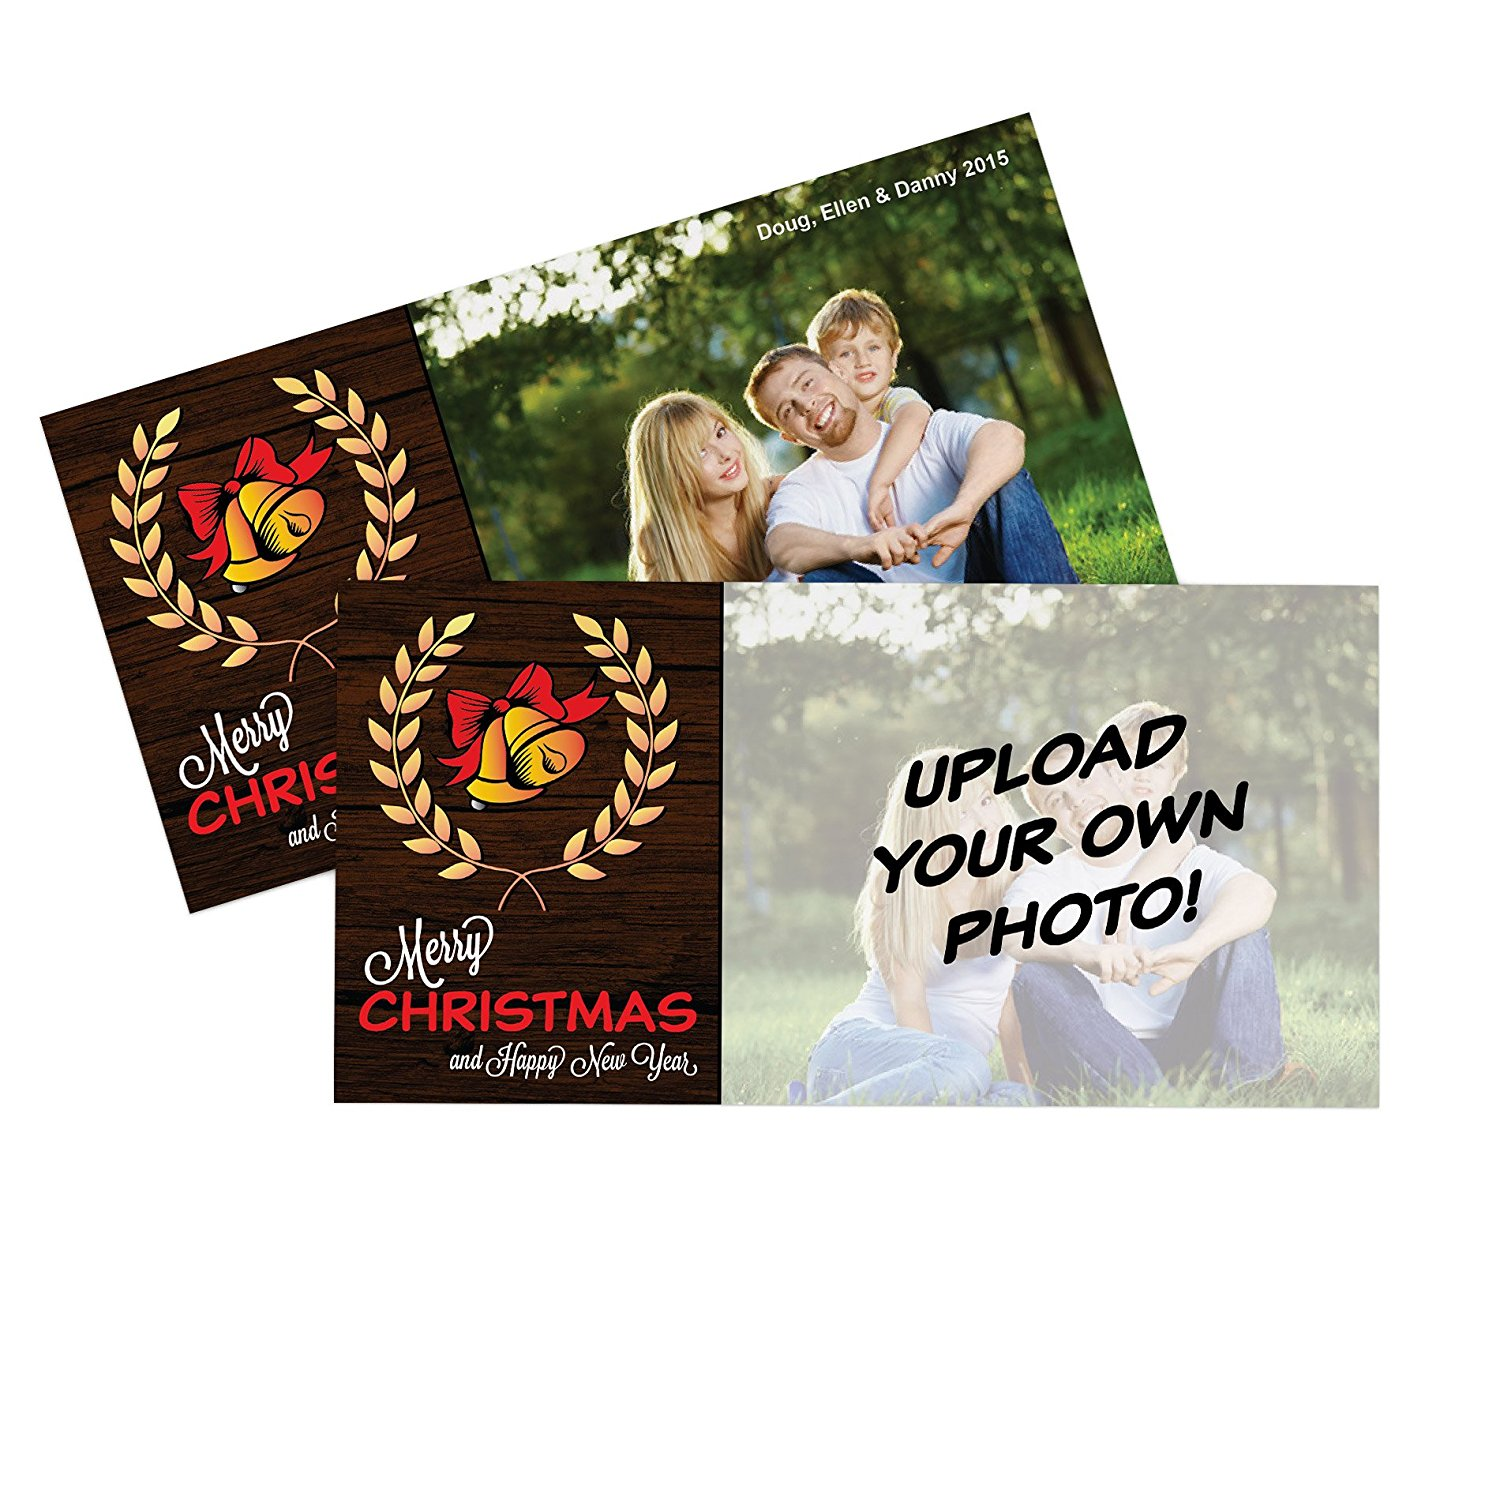 Cheap make custom greeting cards online find make custom greeting get quotations upload your own photo holiday cards 50 thick 4 x 8 postcard style m4hsunfo